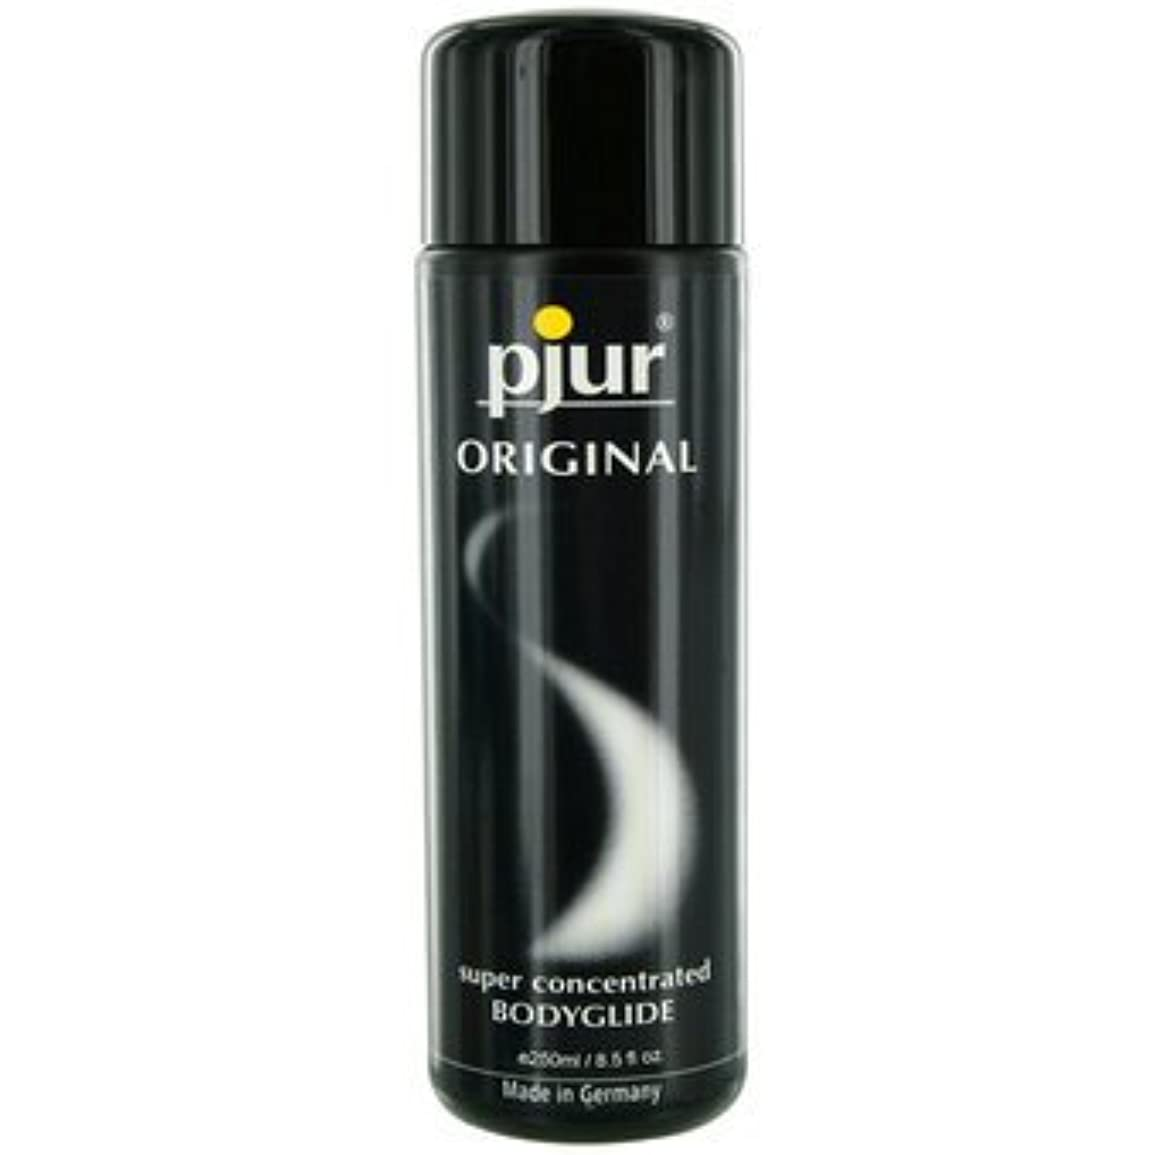 容量すなわち恐ろしいですPjur Original Body Glide Lubricant - 250ml